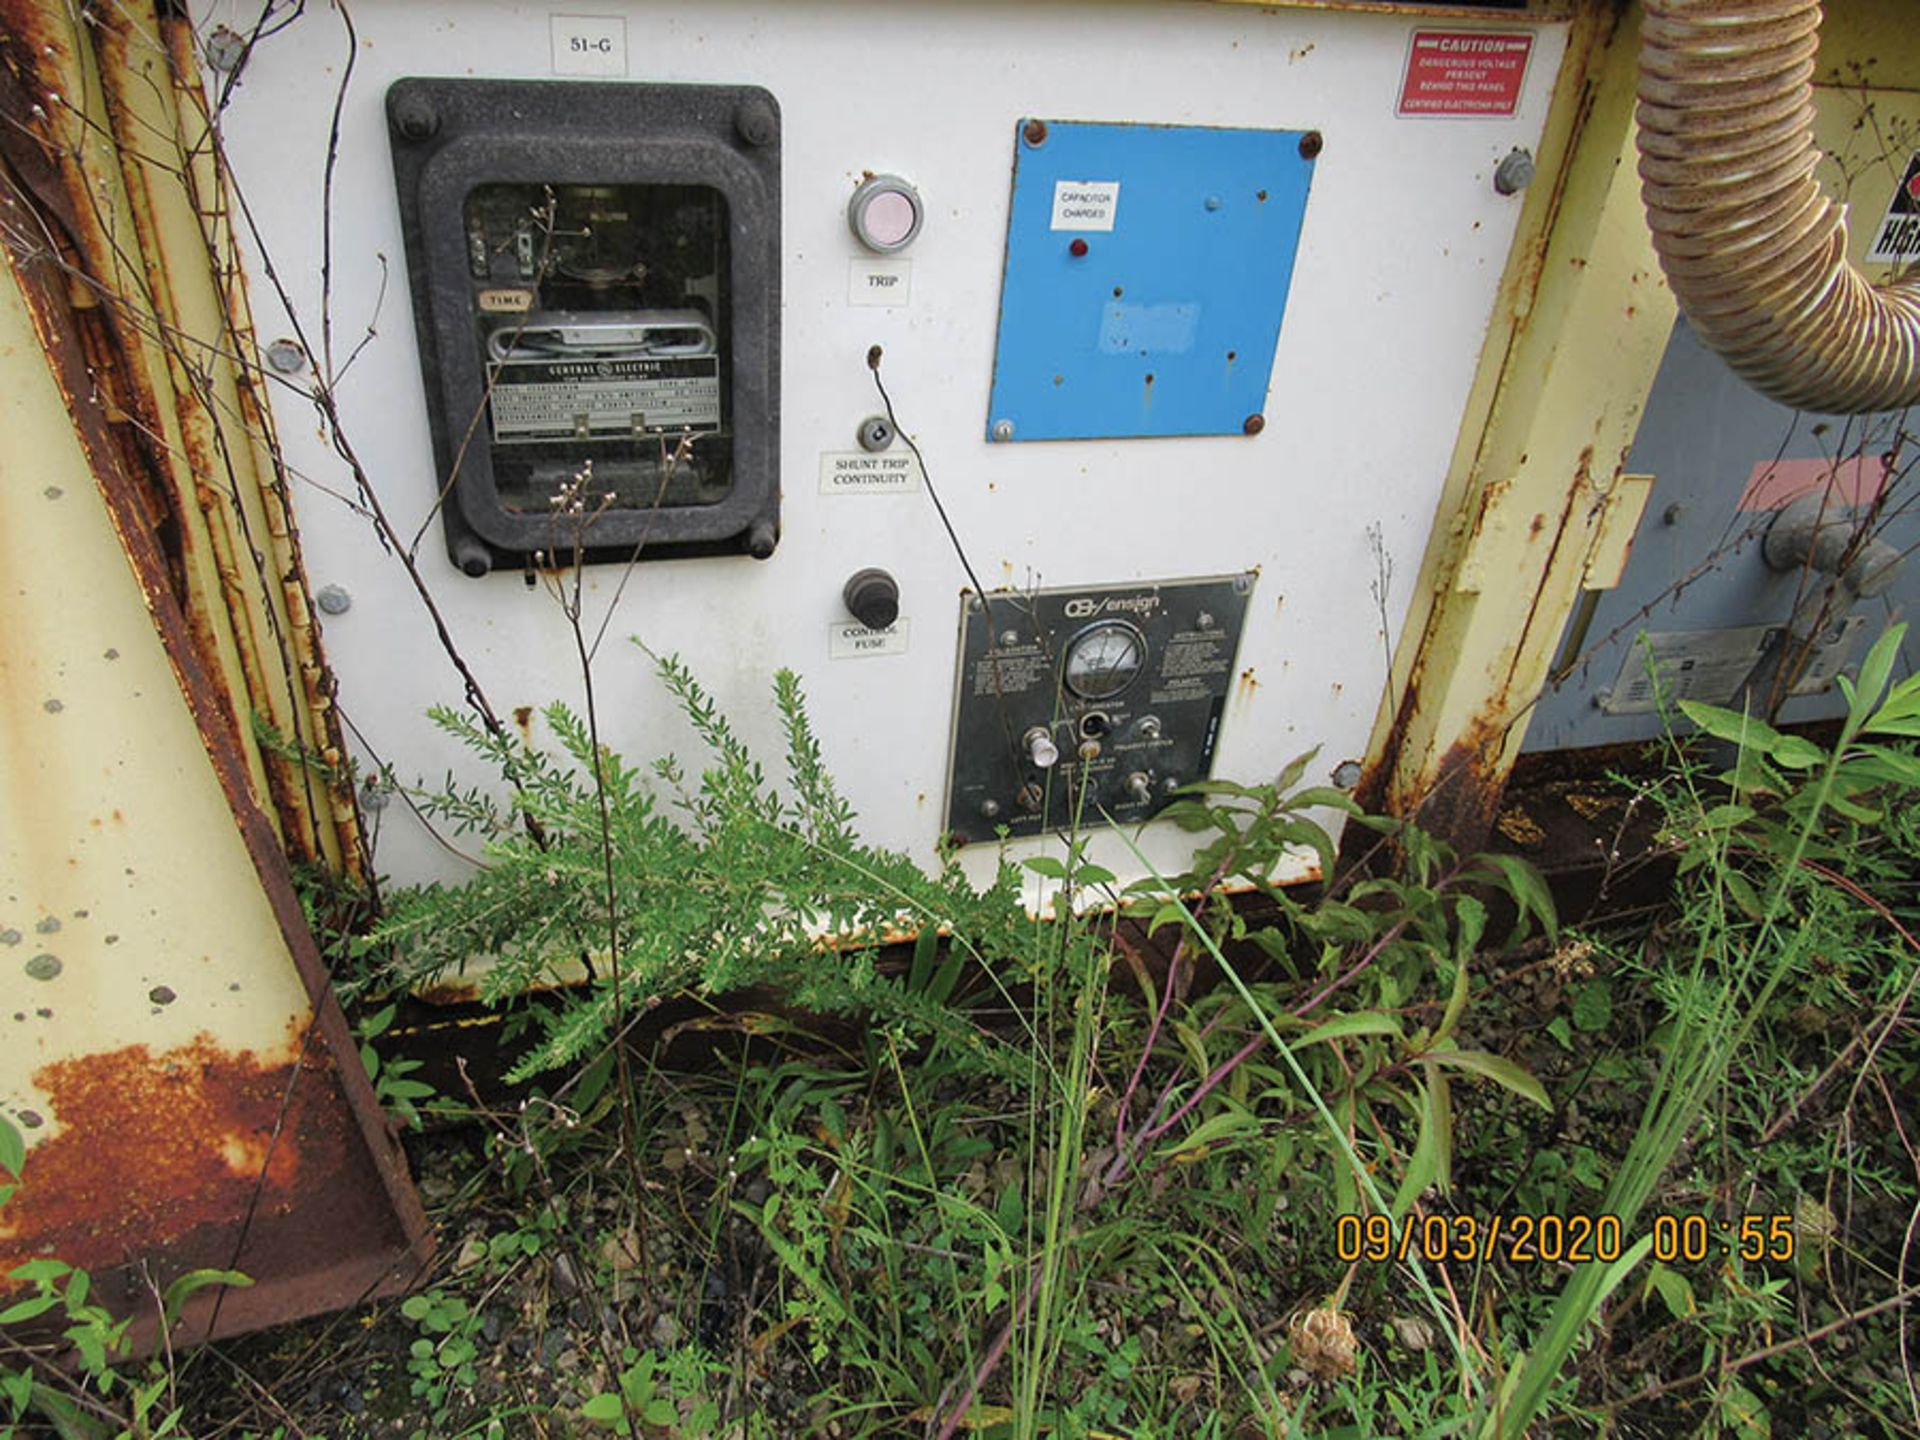 Lot 611 - AMERICAN ELECTRIC EQUIPMENT POWER CENTER, 7,200 VOLTS, S/N 9854-197